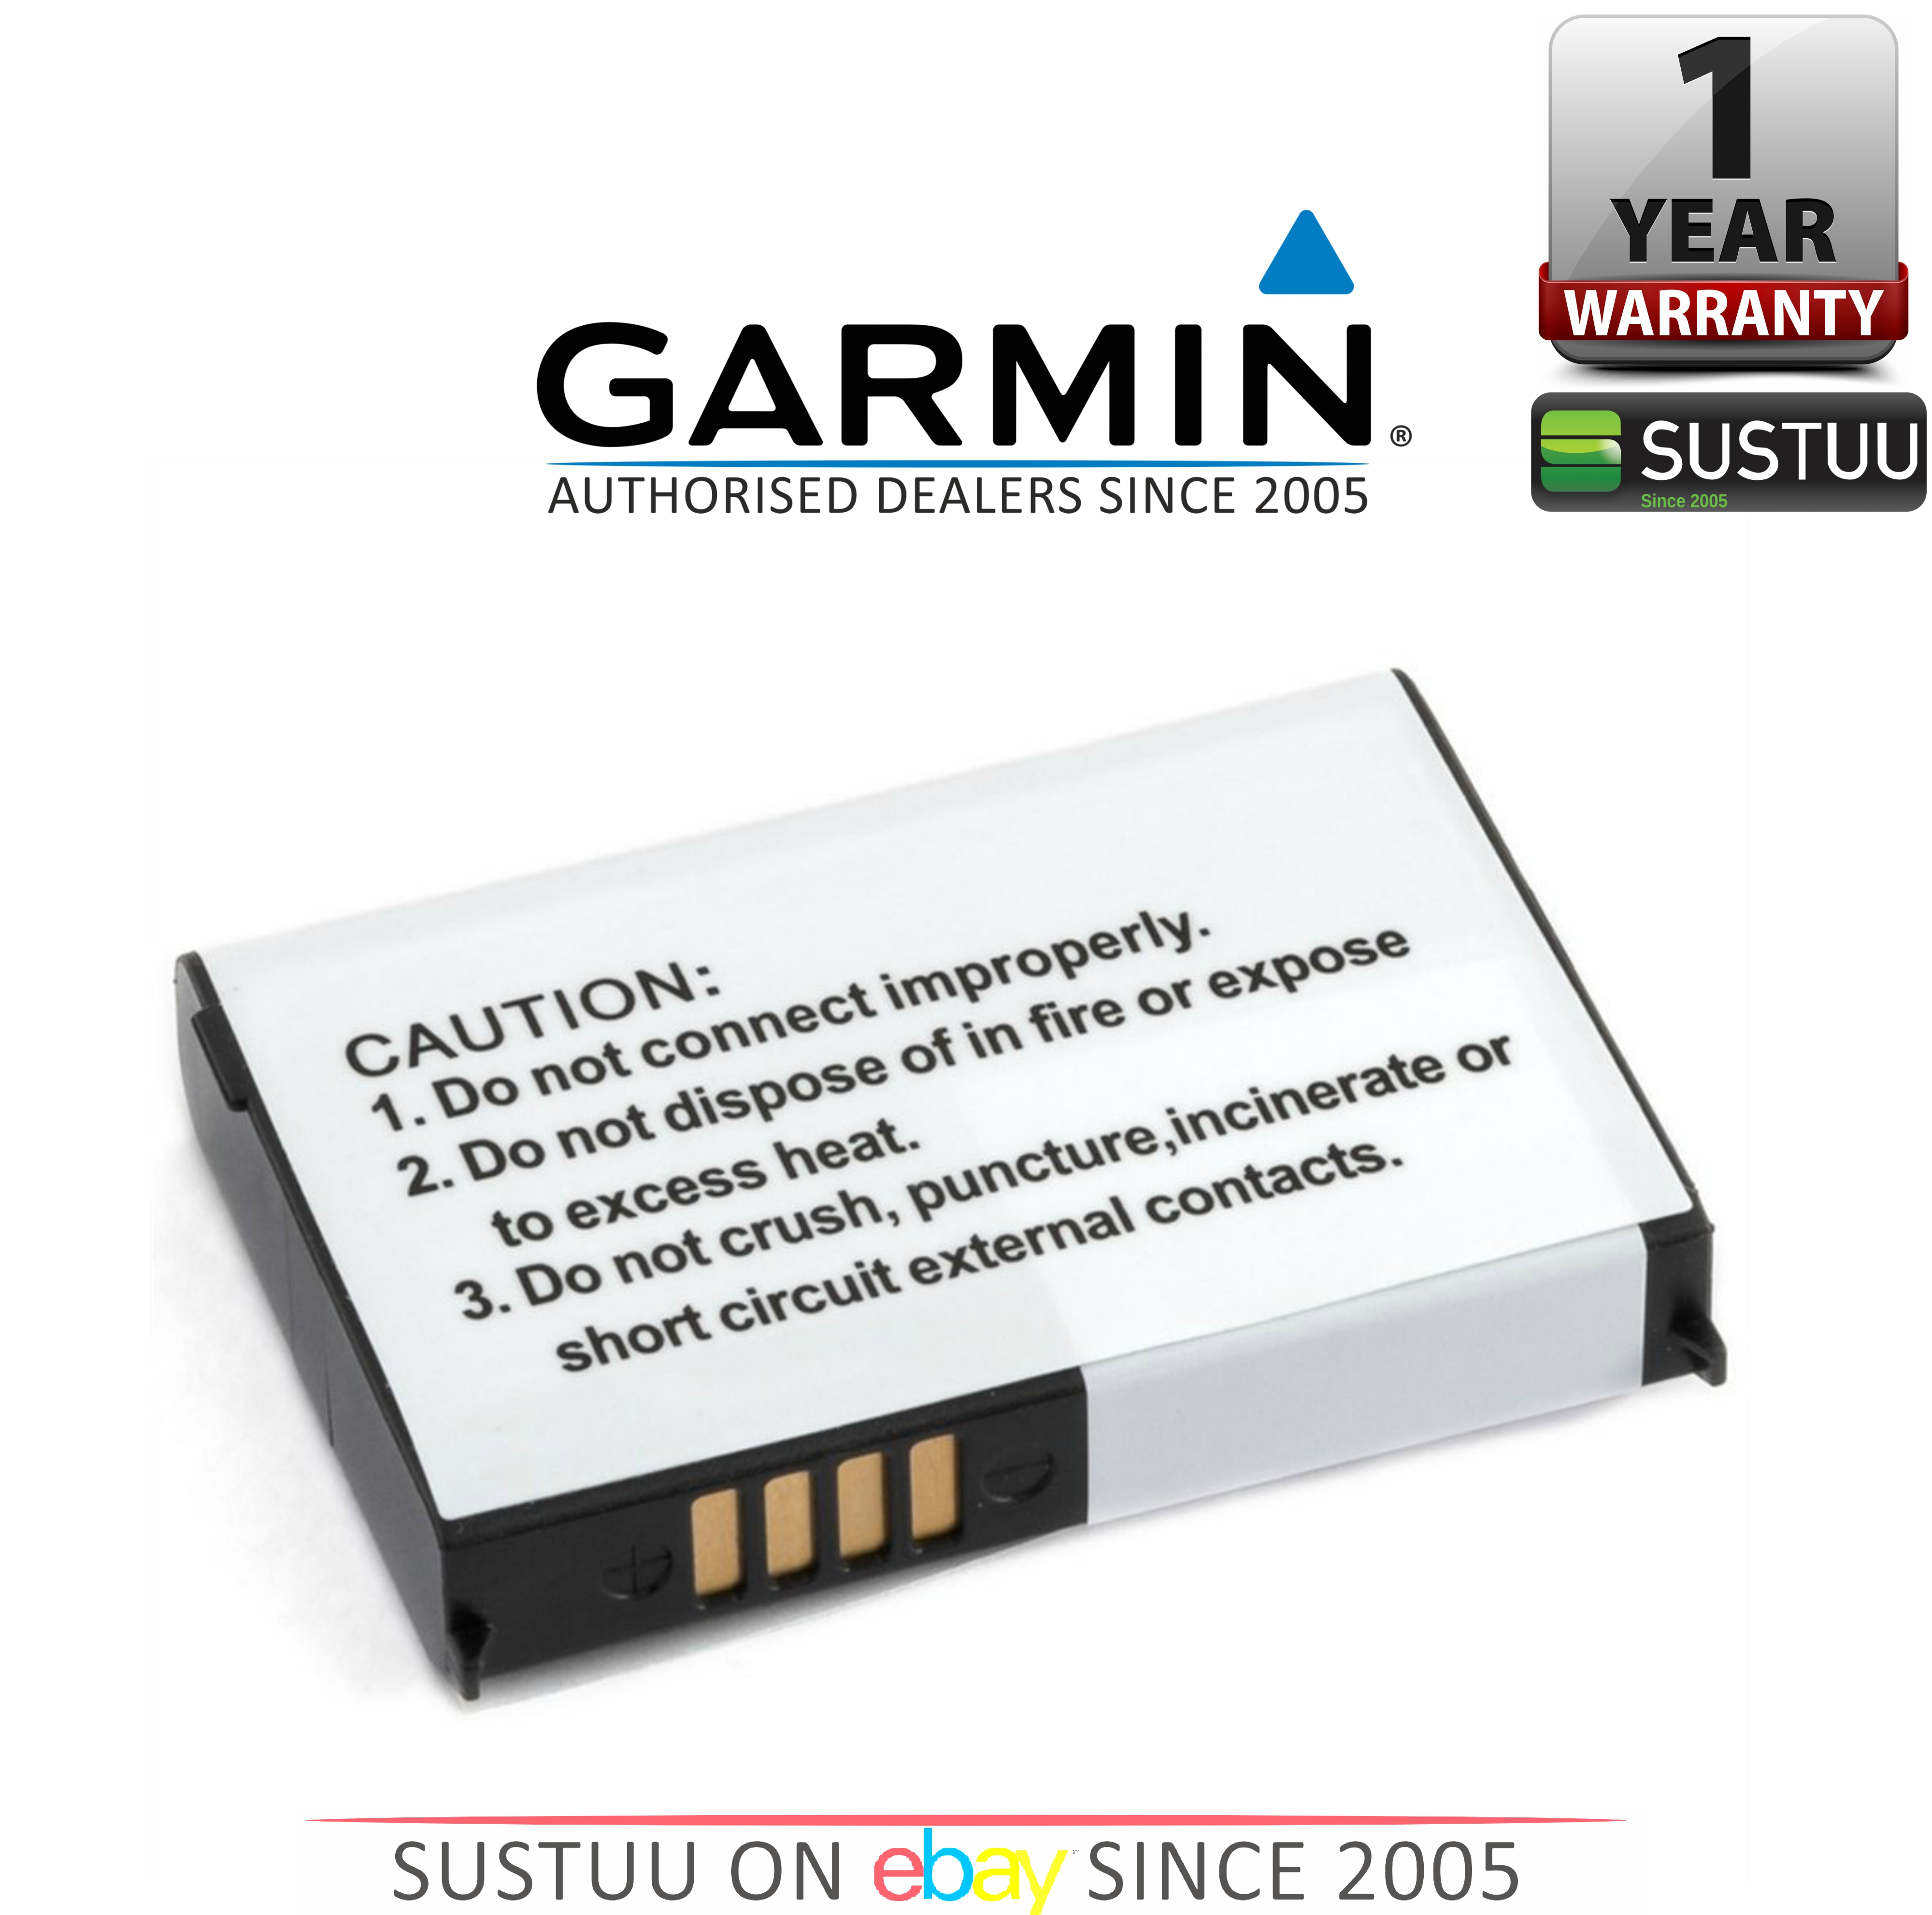 Garmin Lithium Ion Rechargeable Battery Pack Zumo 660 220 Nuvi 550 010-11143-00